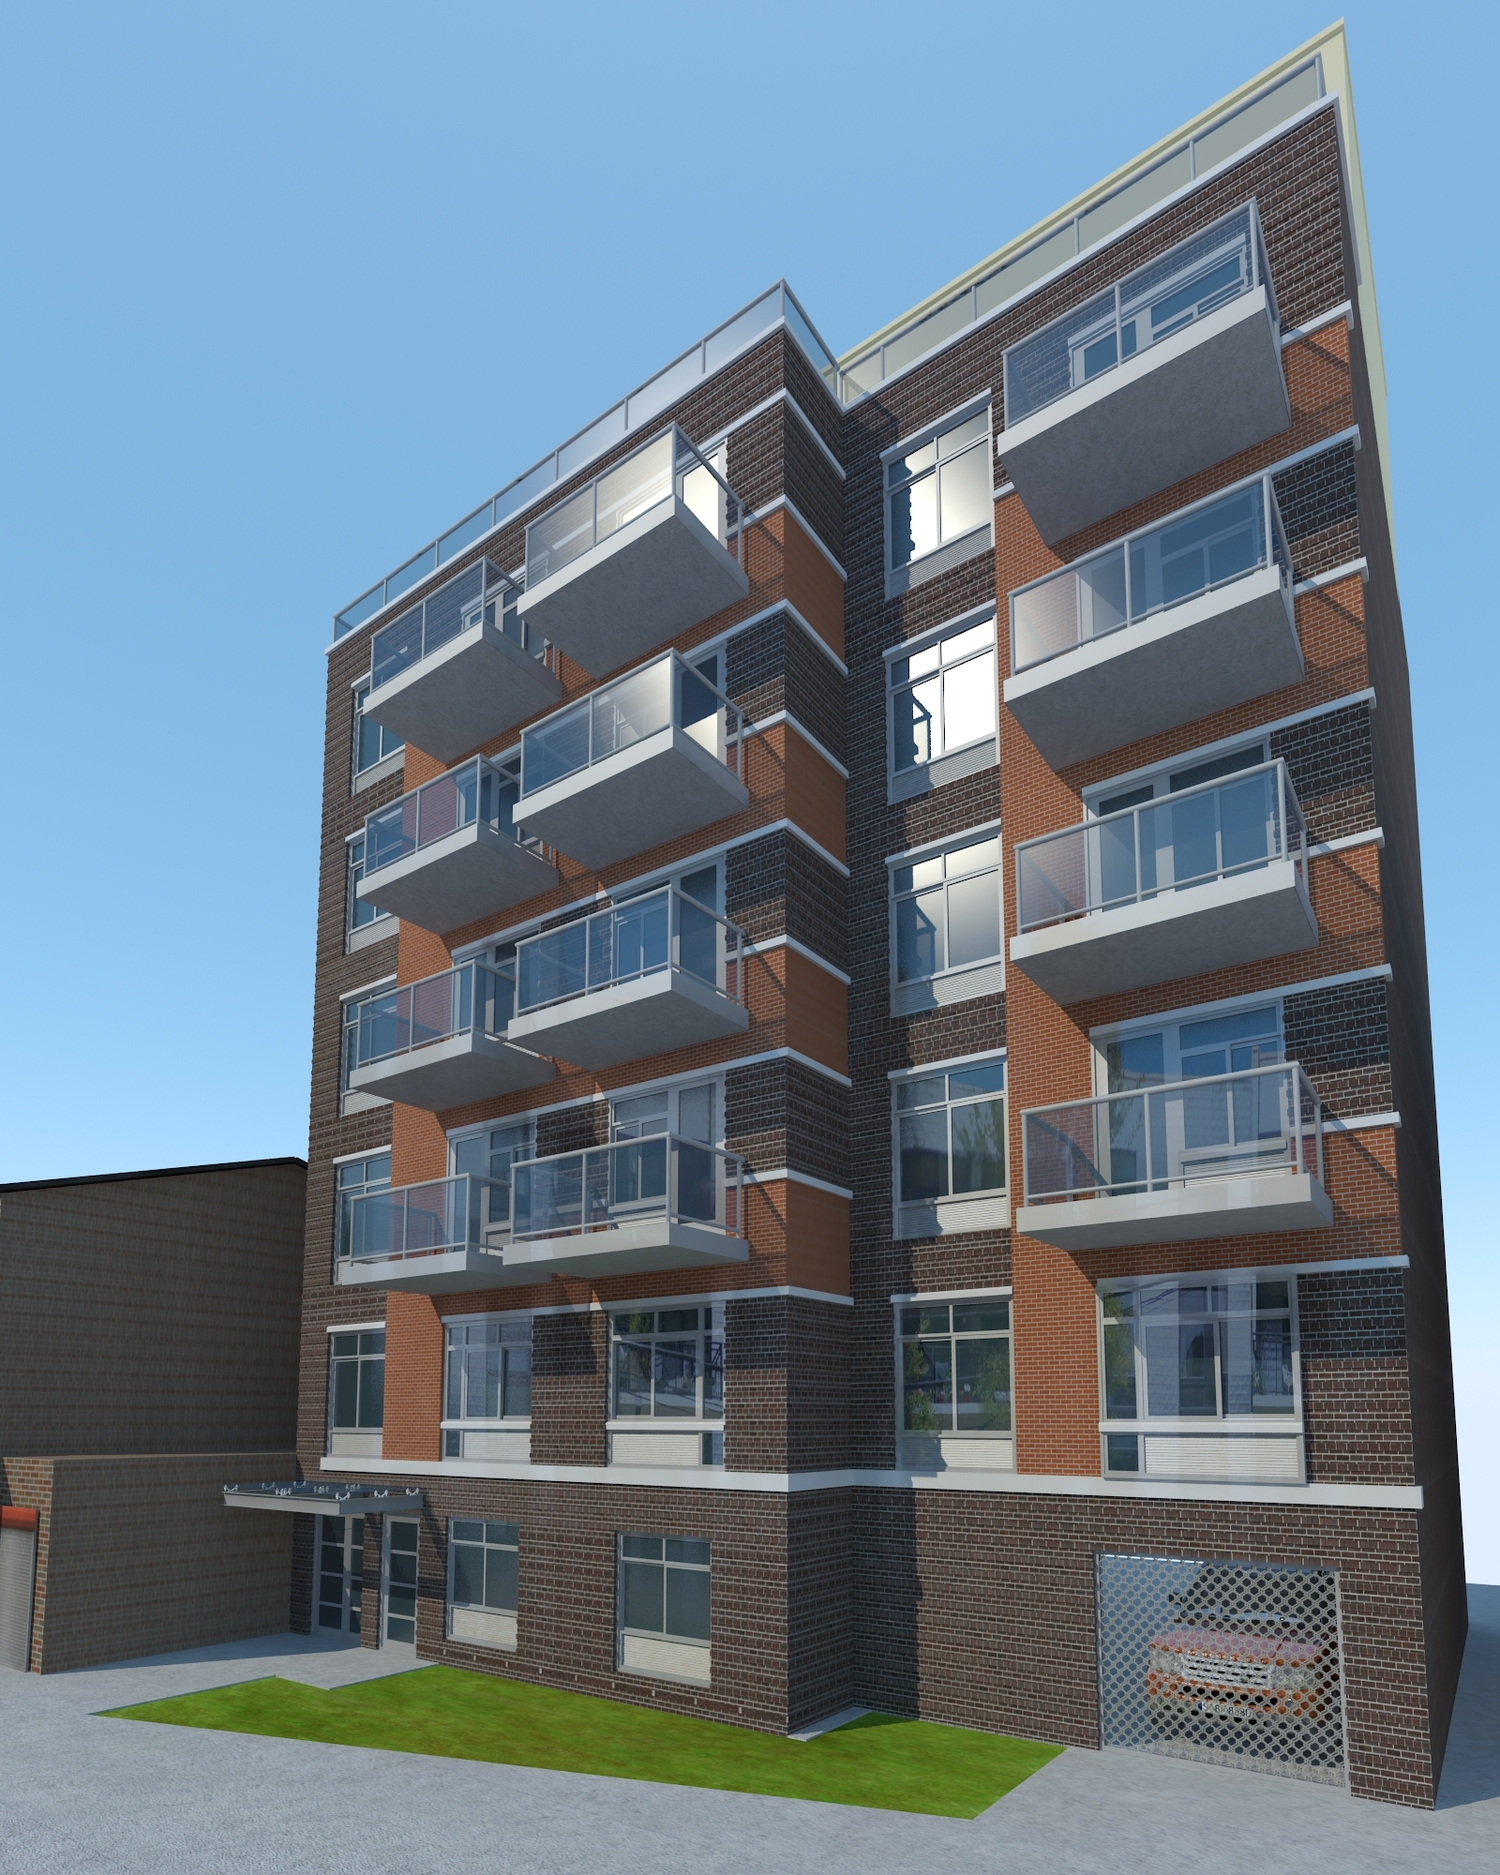 11-07 Welling Court, rendering by Architects Studio